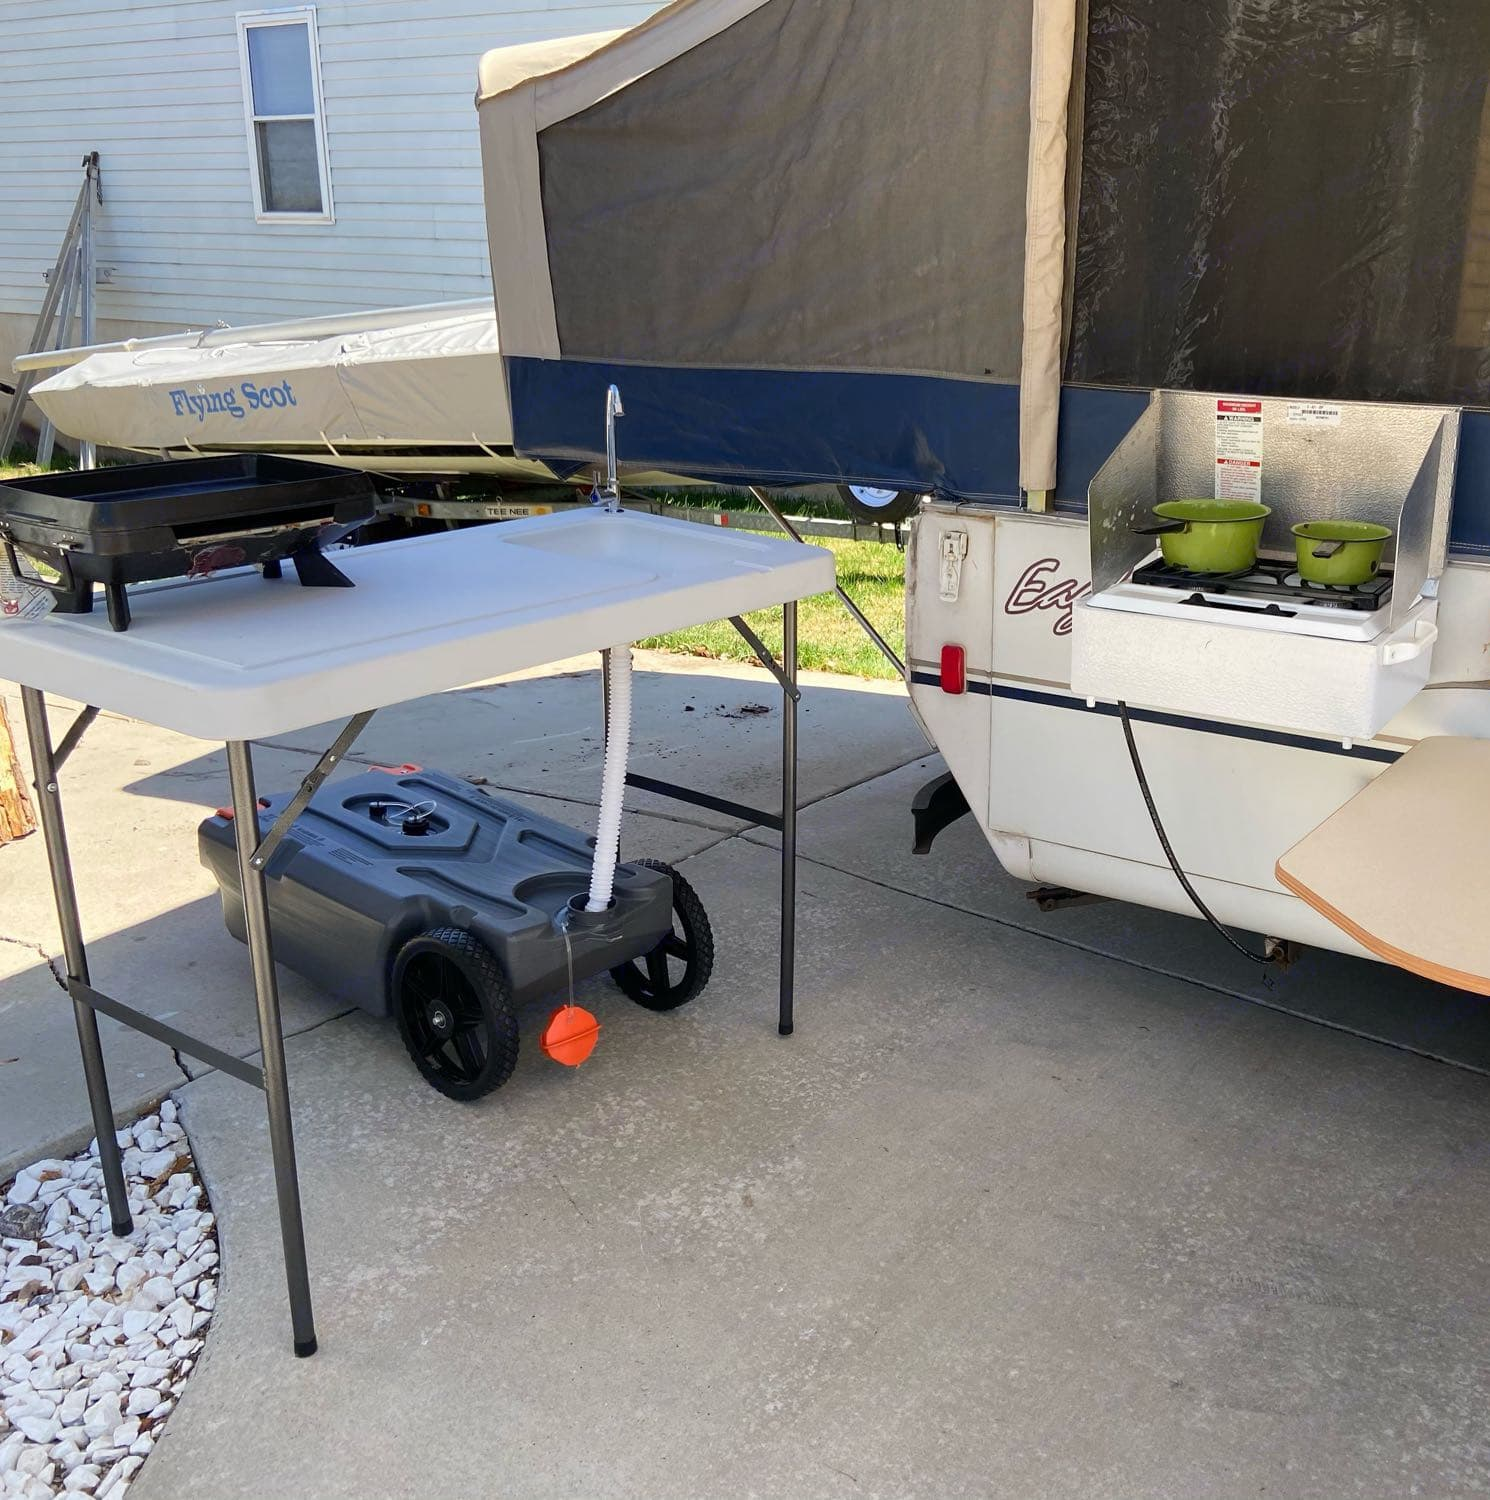 Here you can see the outdoor kitchen setup. With two cooktops and an outdoor sink this rig is ready to go. . Jayco Eagle 2003